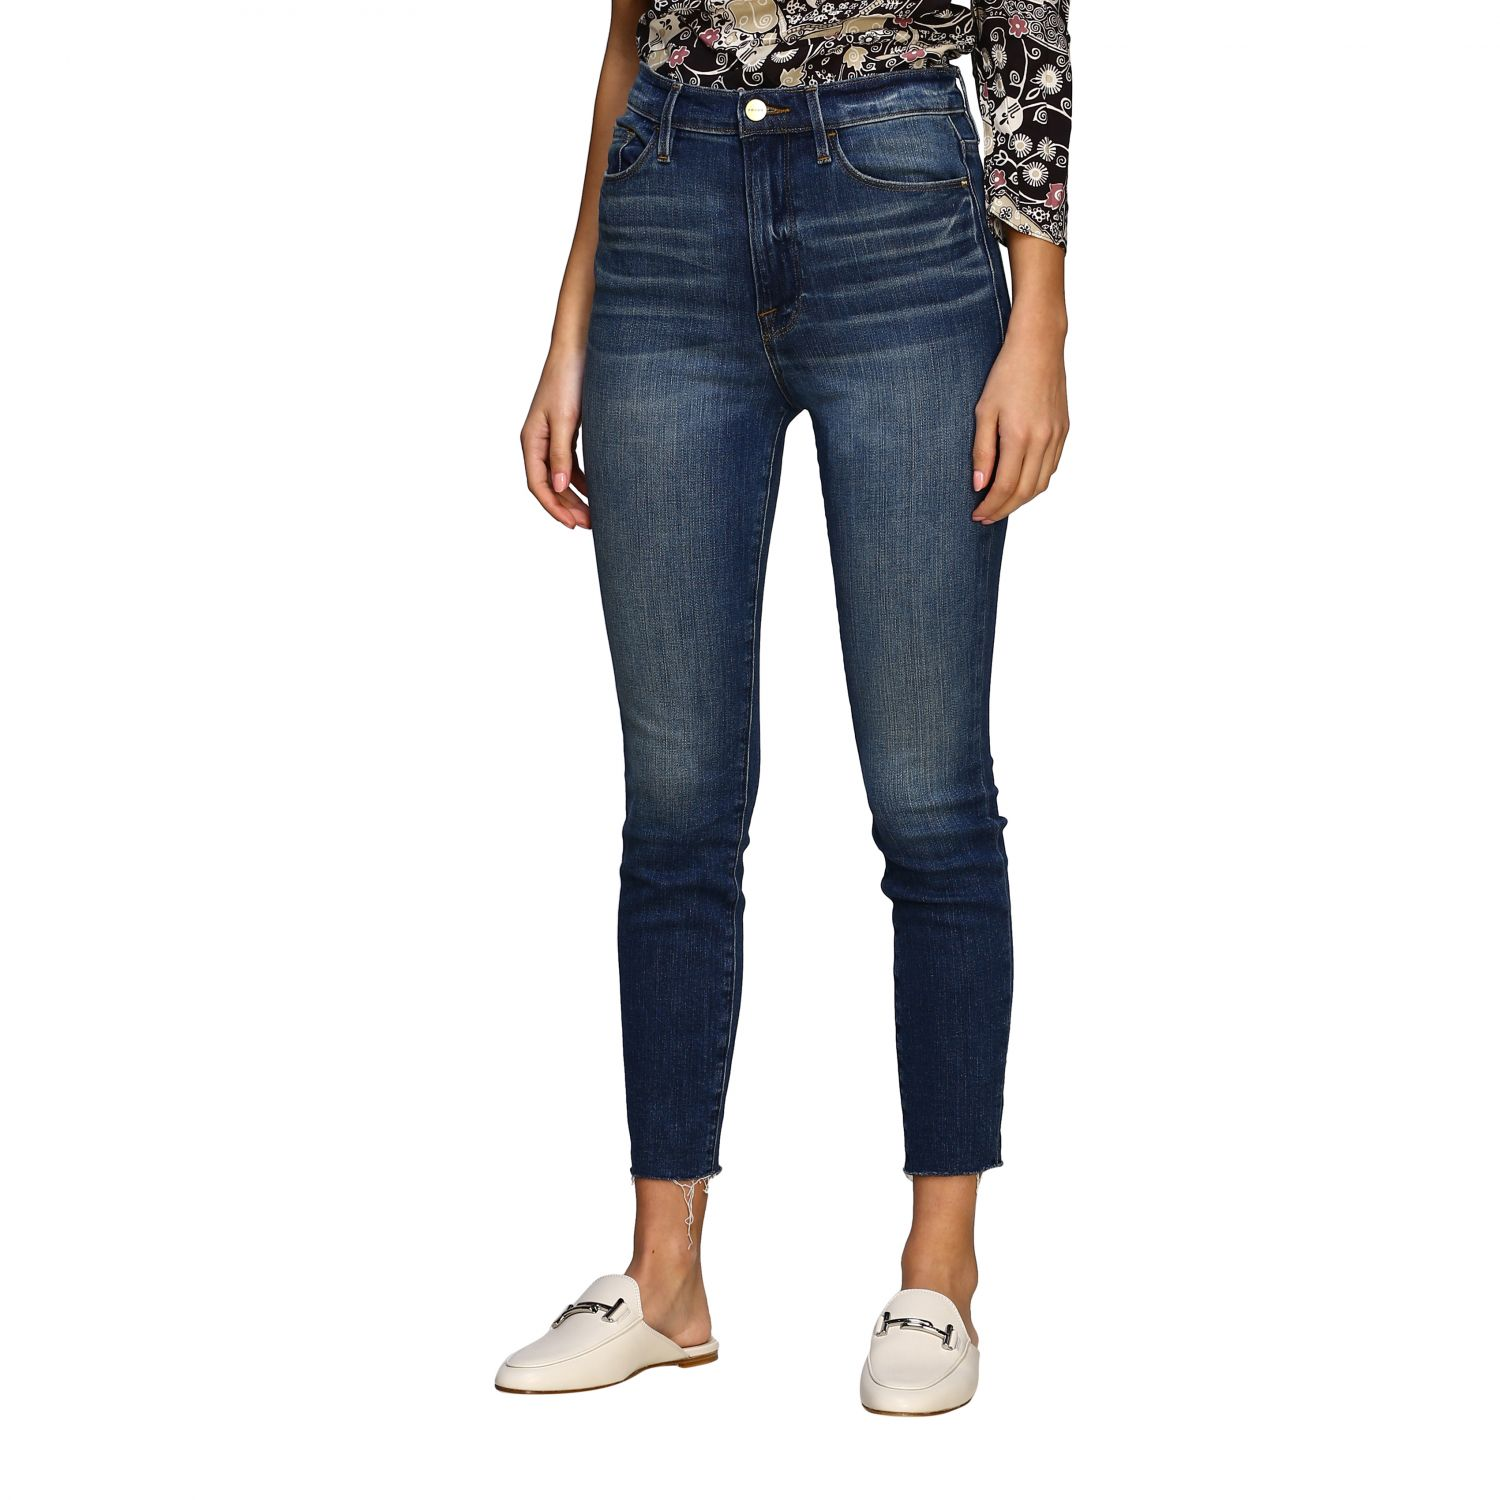 Jeans women Frame blue 4